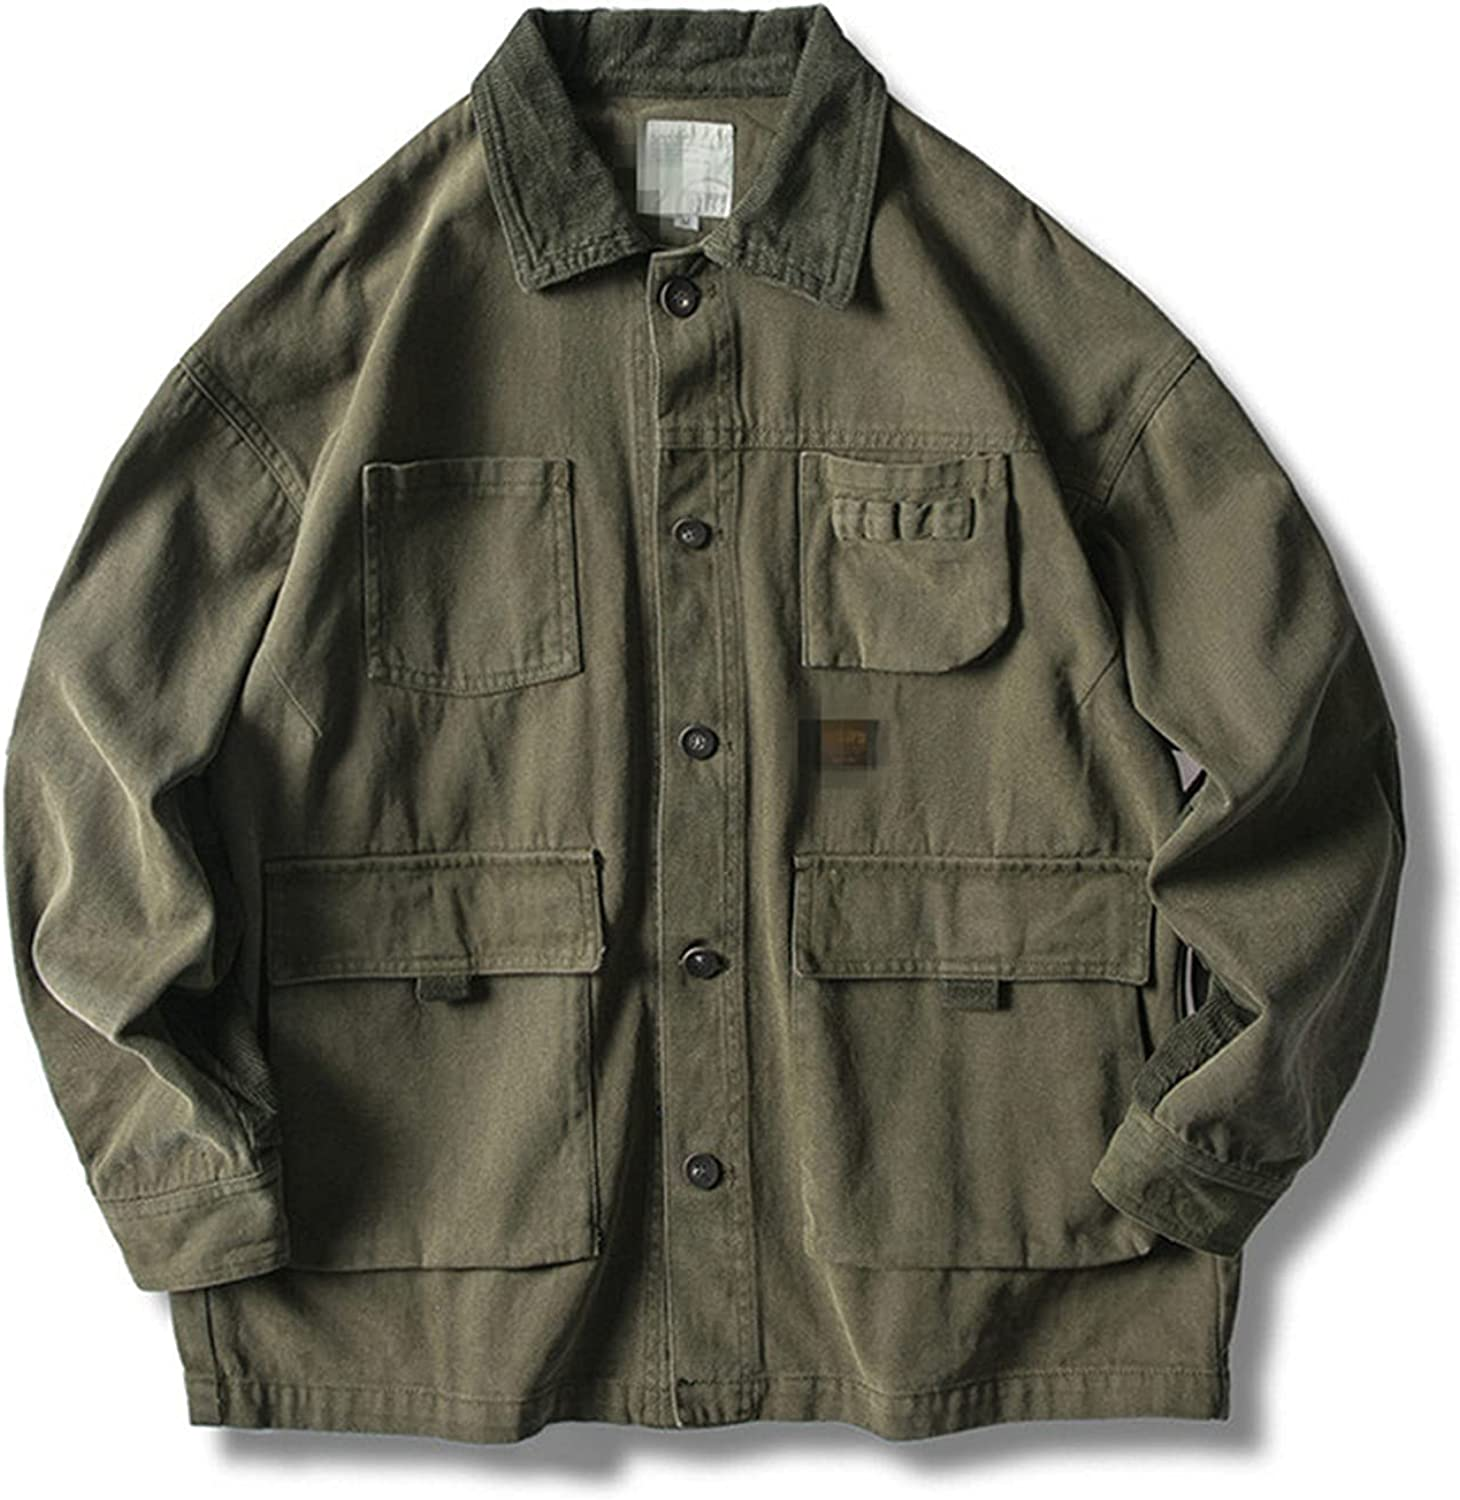 Men's Long Sleeve Retro Military Jacket,Outdoor Solid Color Casual Multi-Pocket Outerwear, Classic Anorak